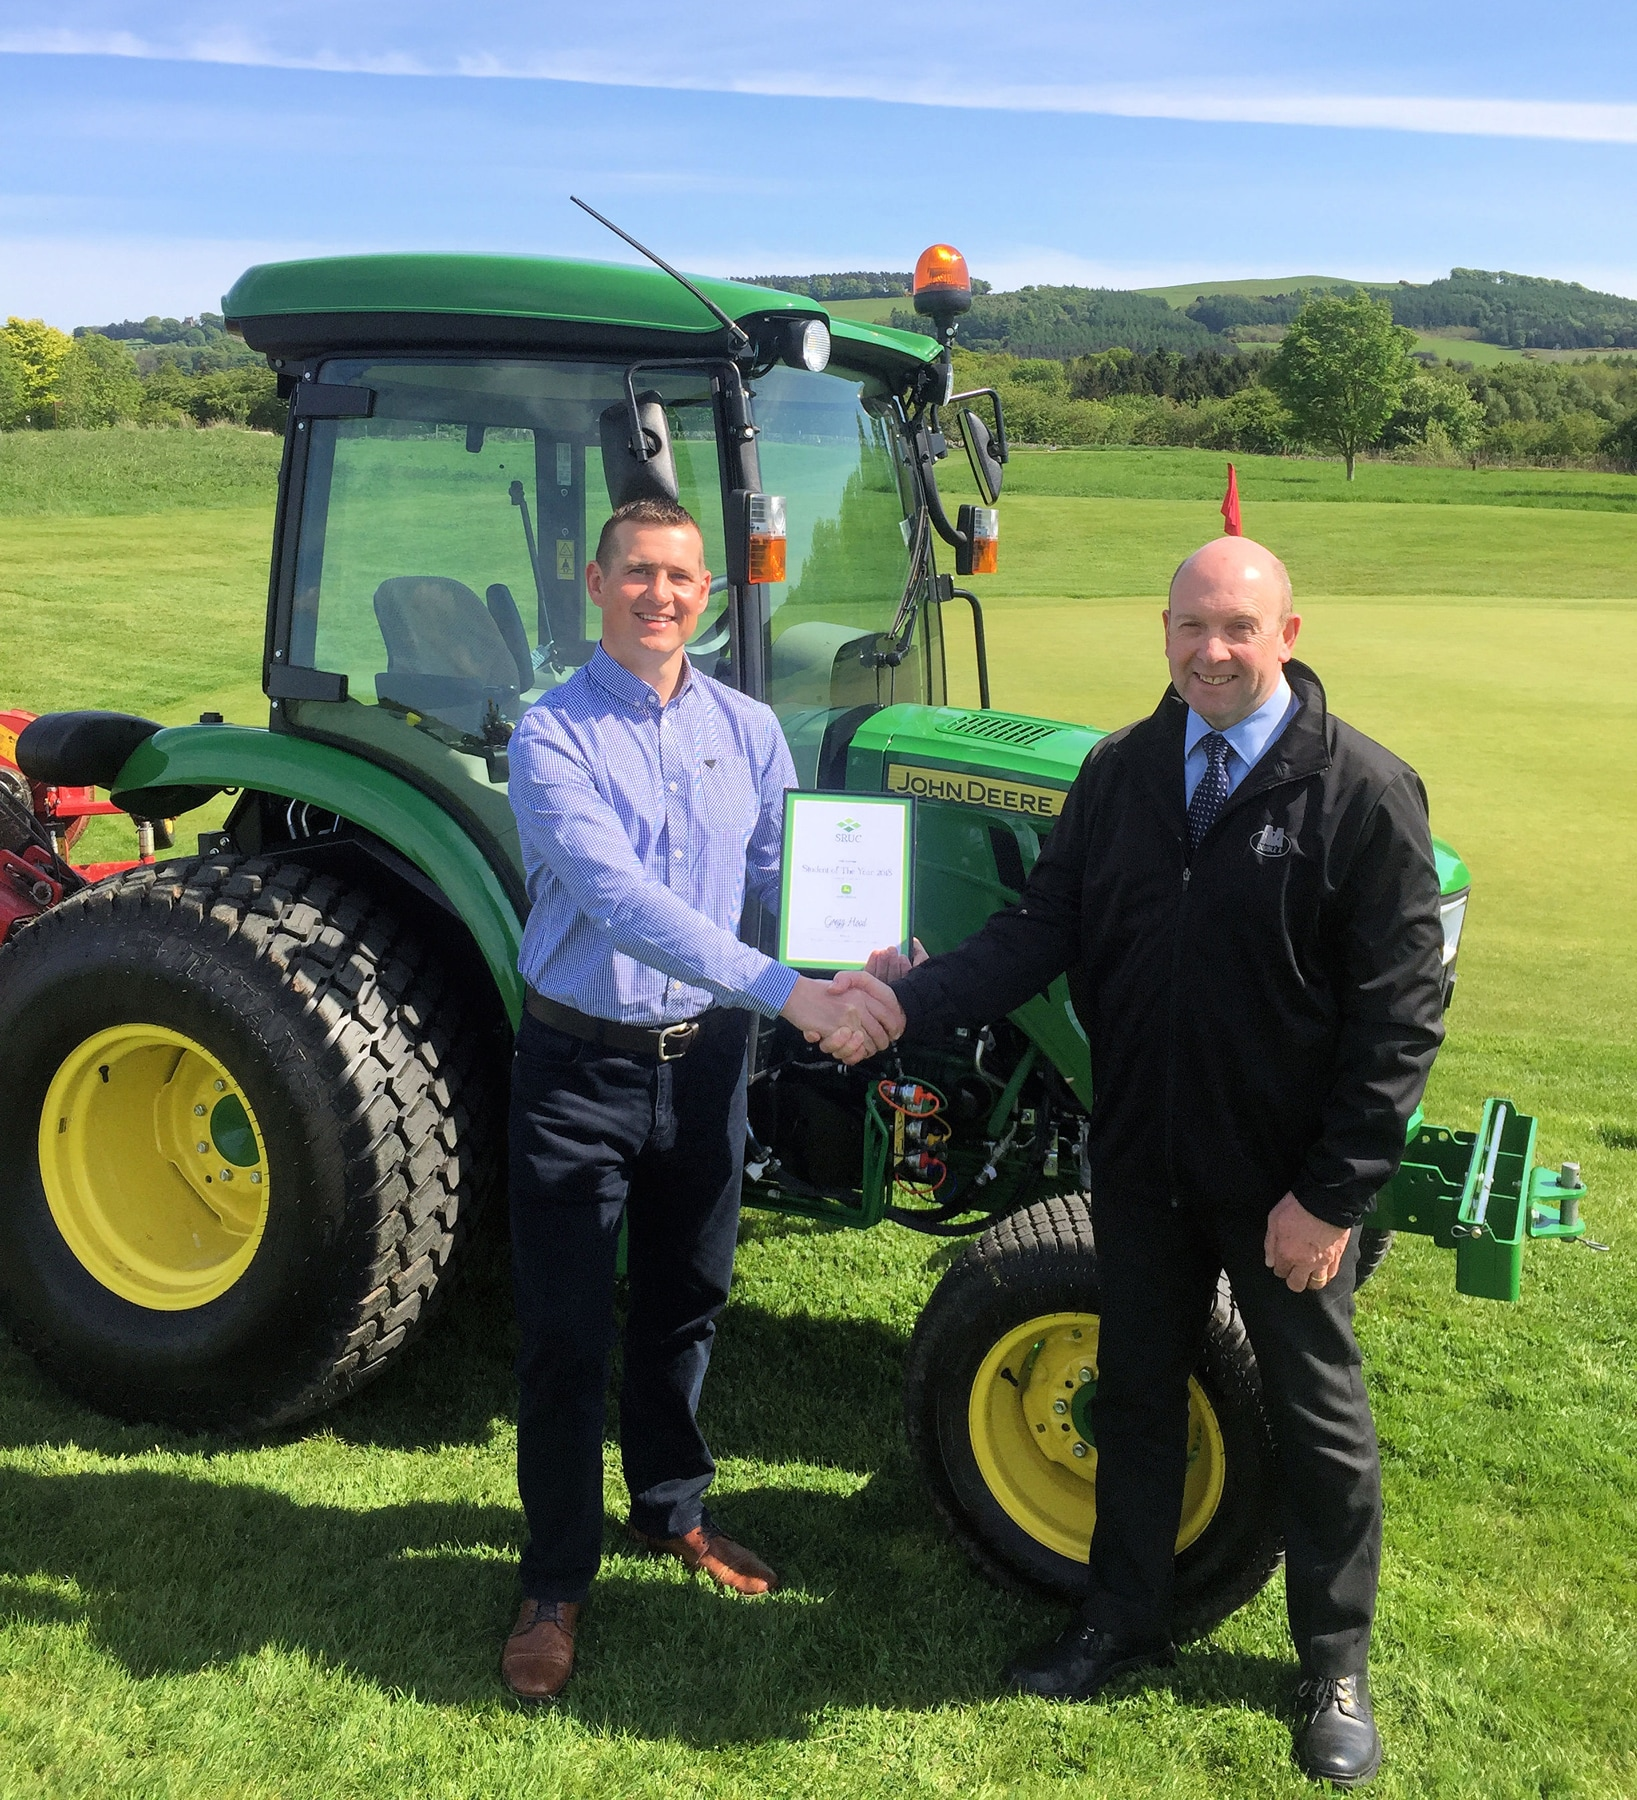 Gregg Hood wins 2018 greenkeeping award